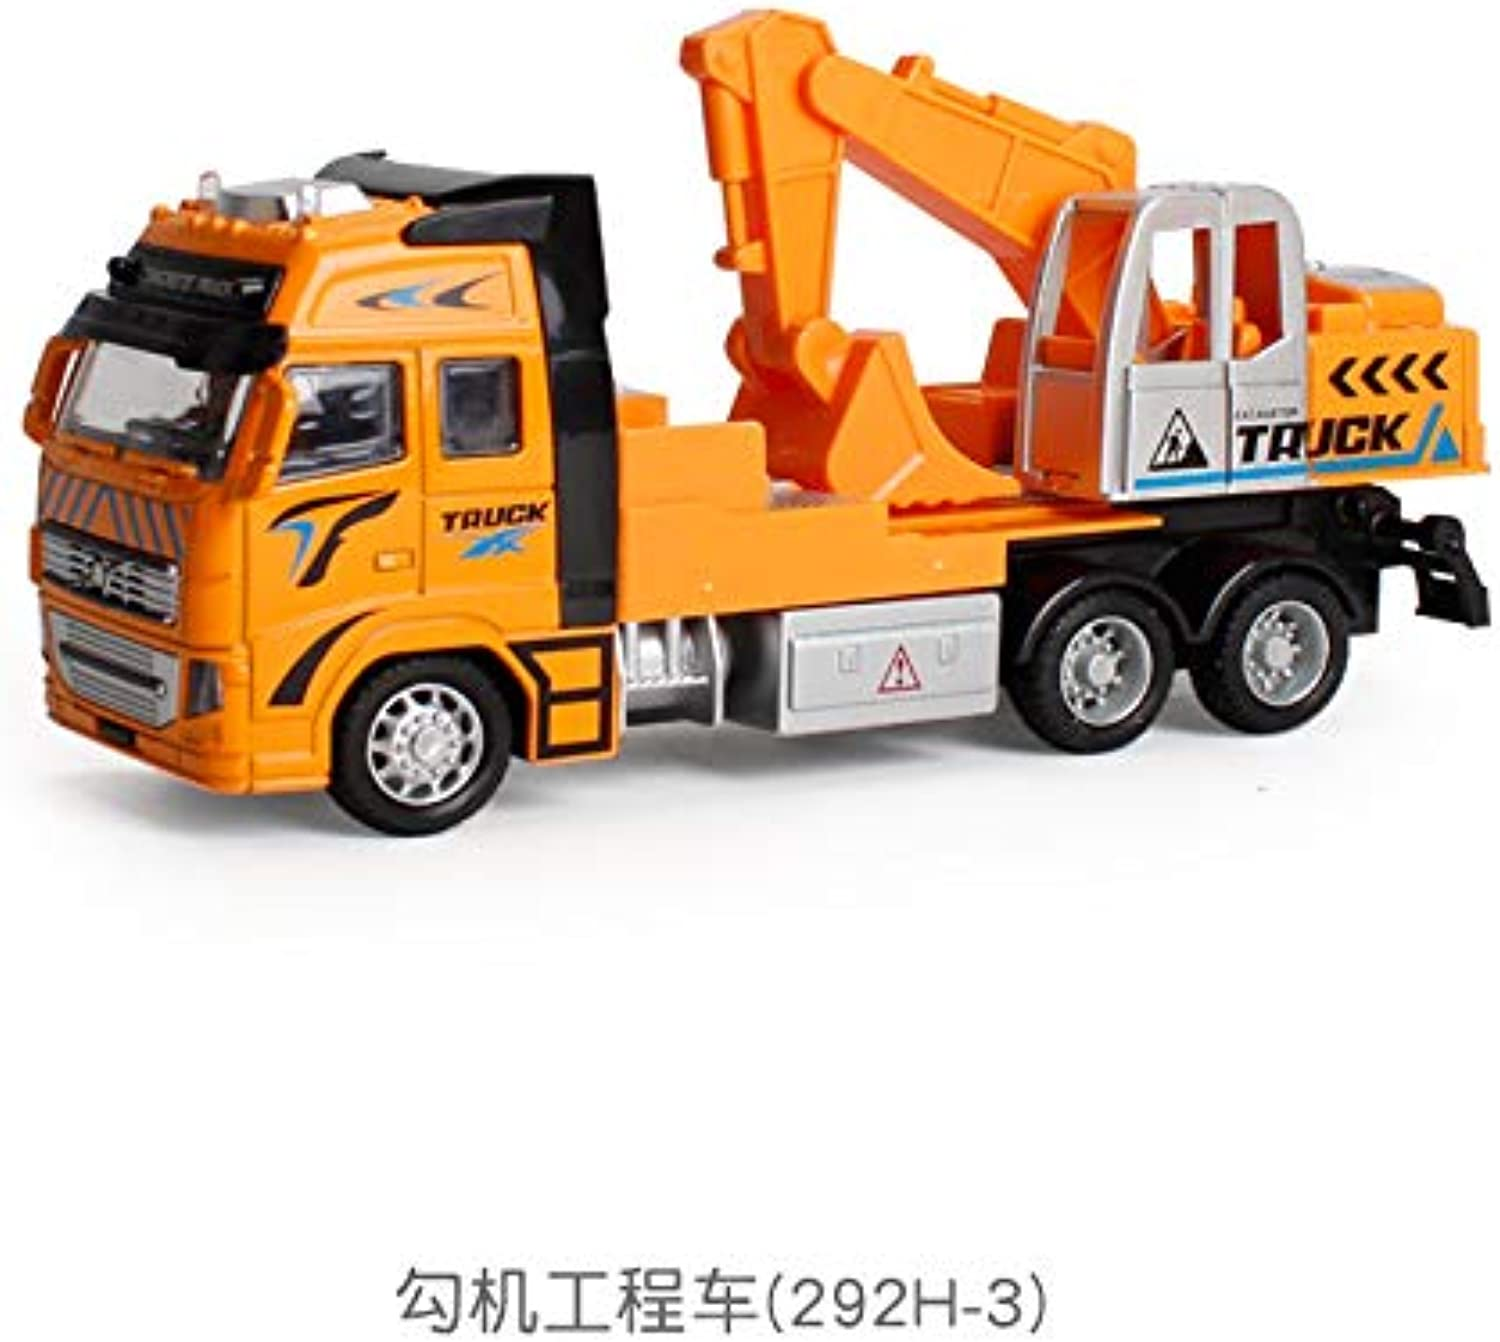 Generic 1 18 Toy Car Sliding Alloy Municipal Engineering Vehicle Model Fire Truck Car Model Excavator Garbage Truck Toy for Kids Gifts 13